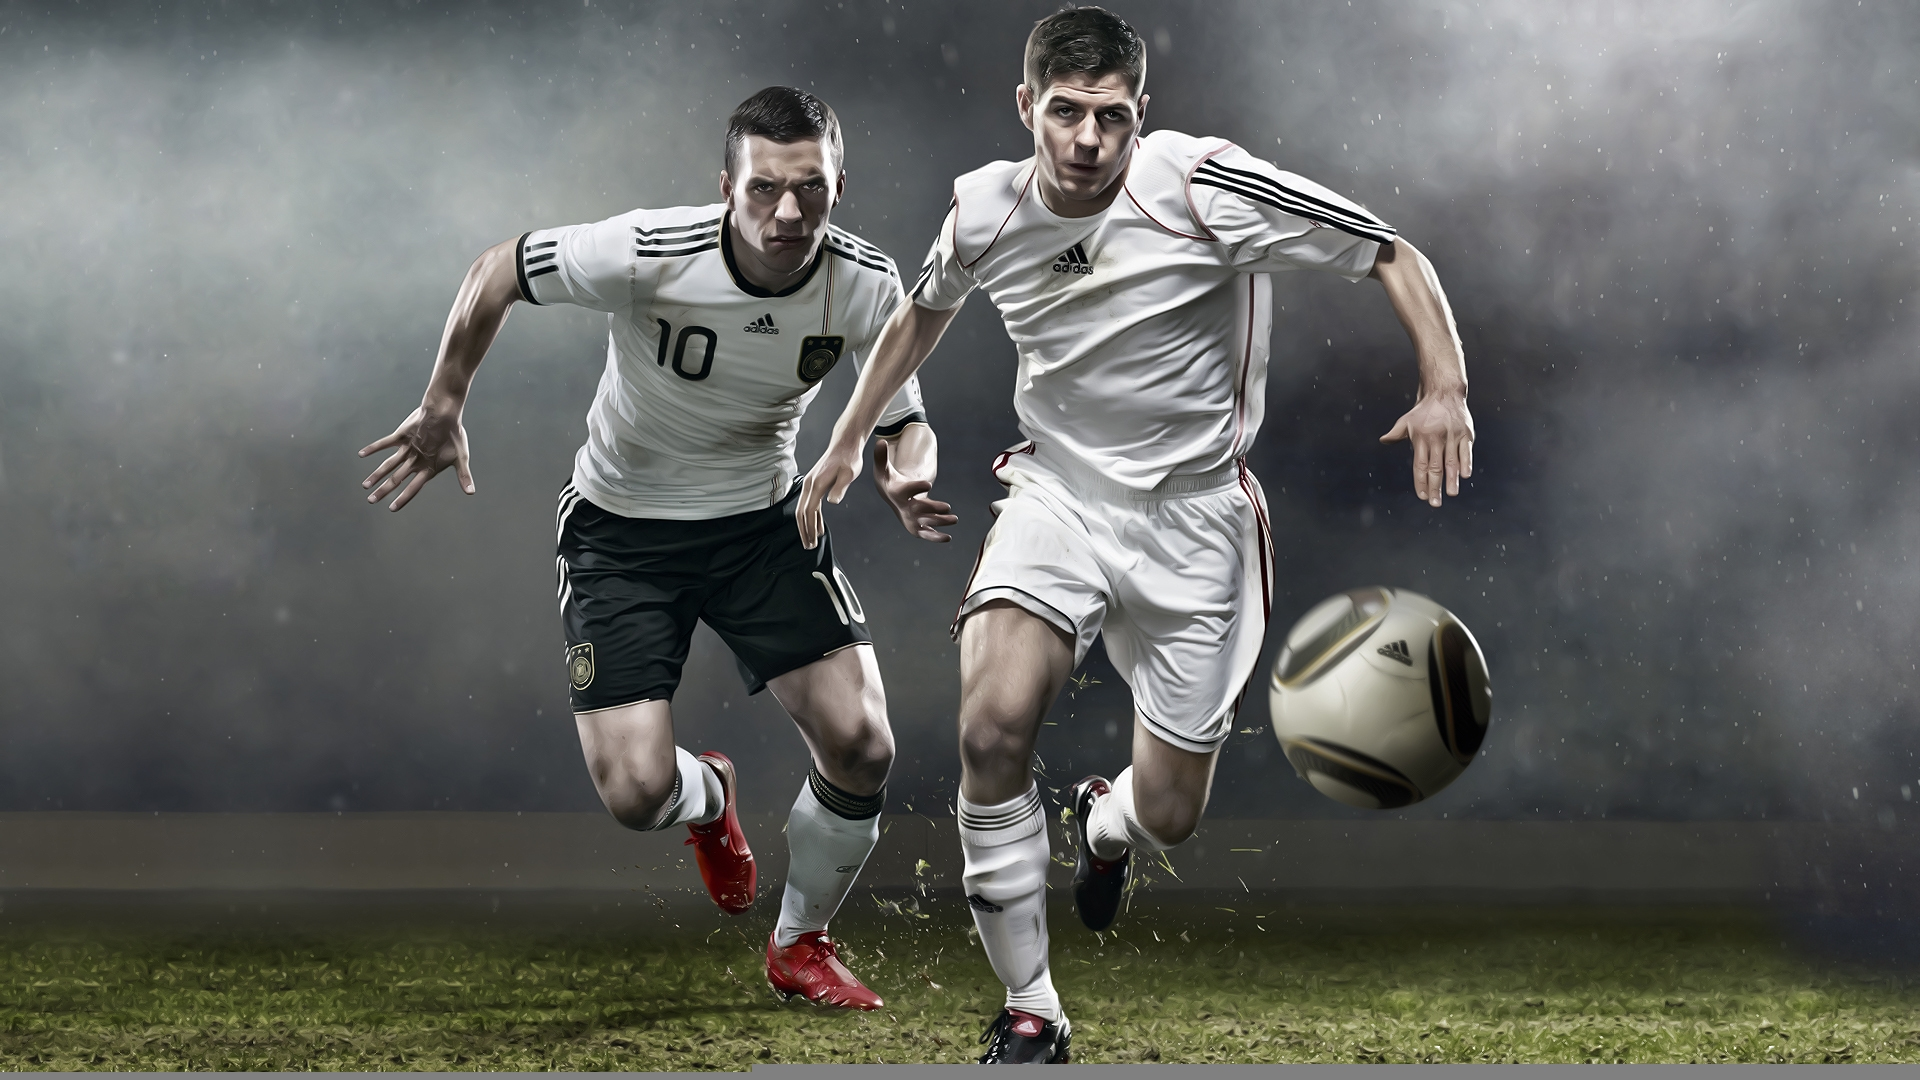 Football Soccer Wallpapers Group (82+)